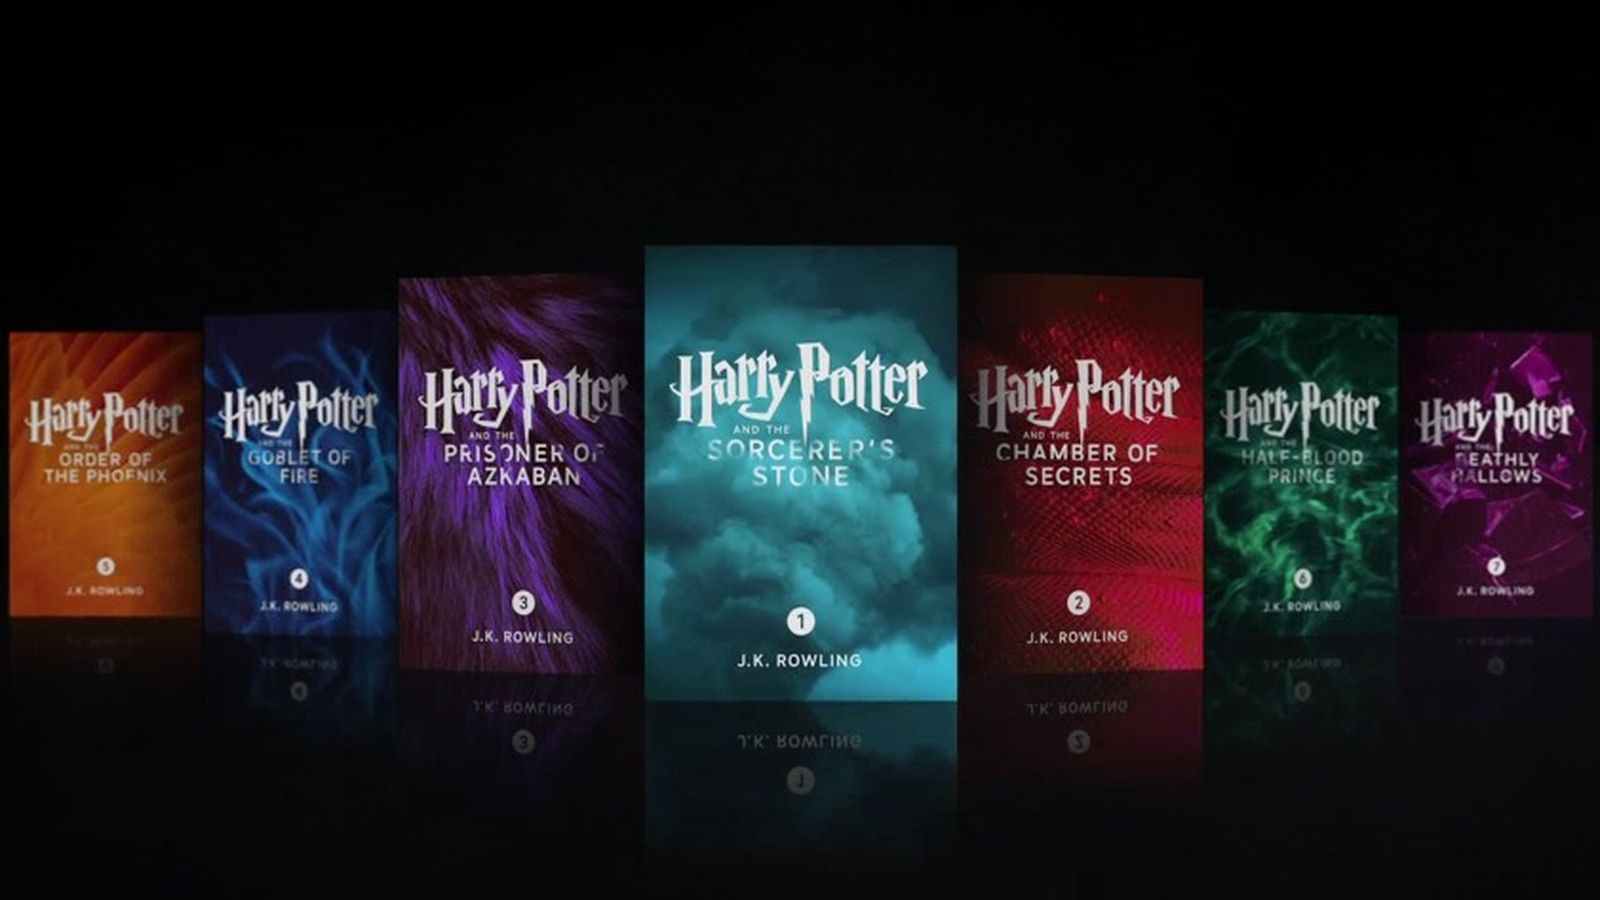 Harry Potter enhanced edition iBooks by J.K. Rowling.